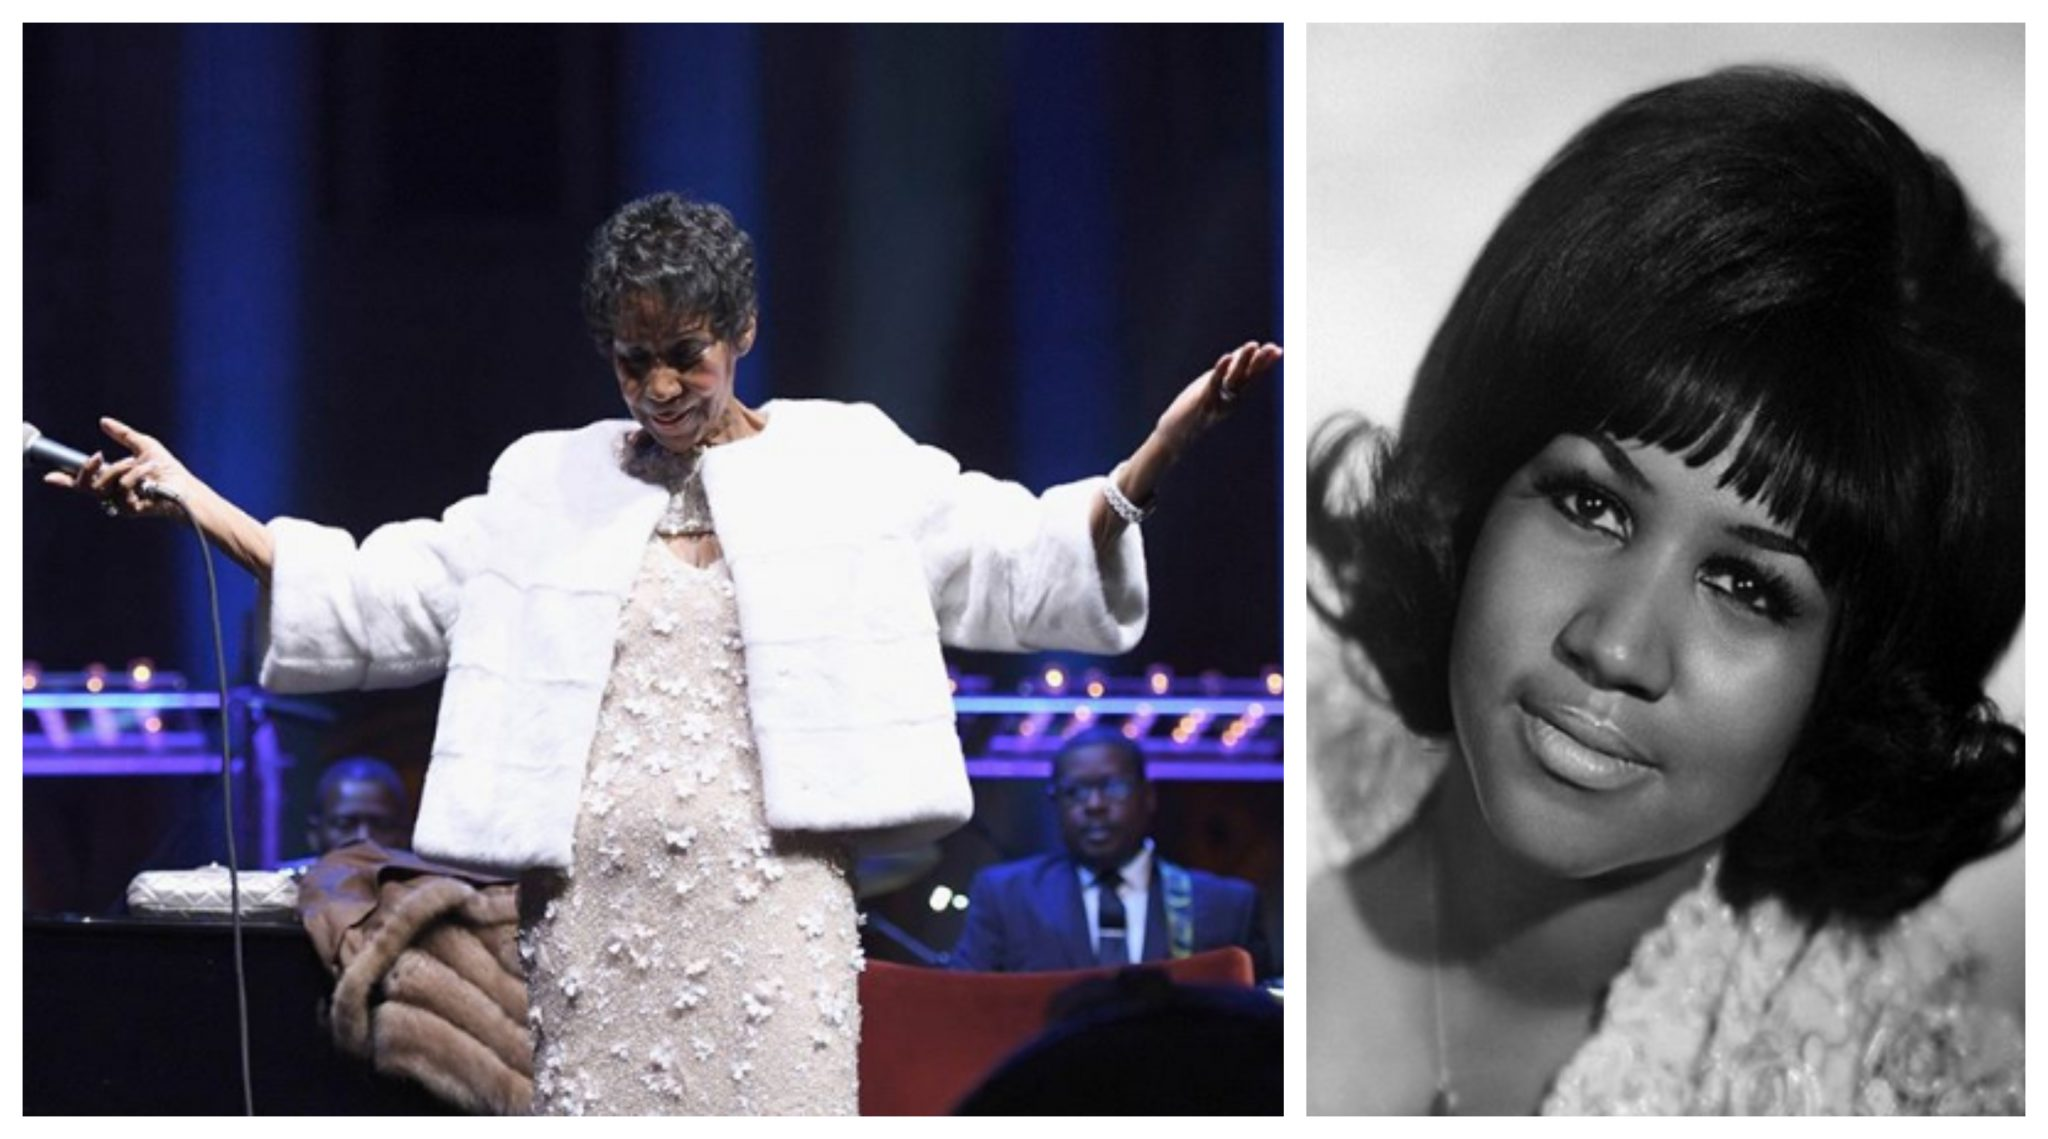 Breaking: Queen Of Soul Aretha Franklin Dies At Age 76